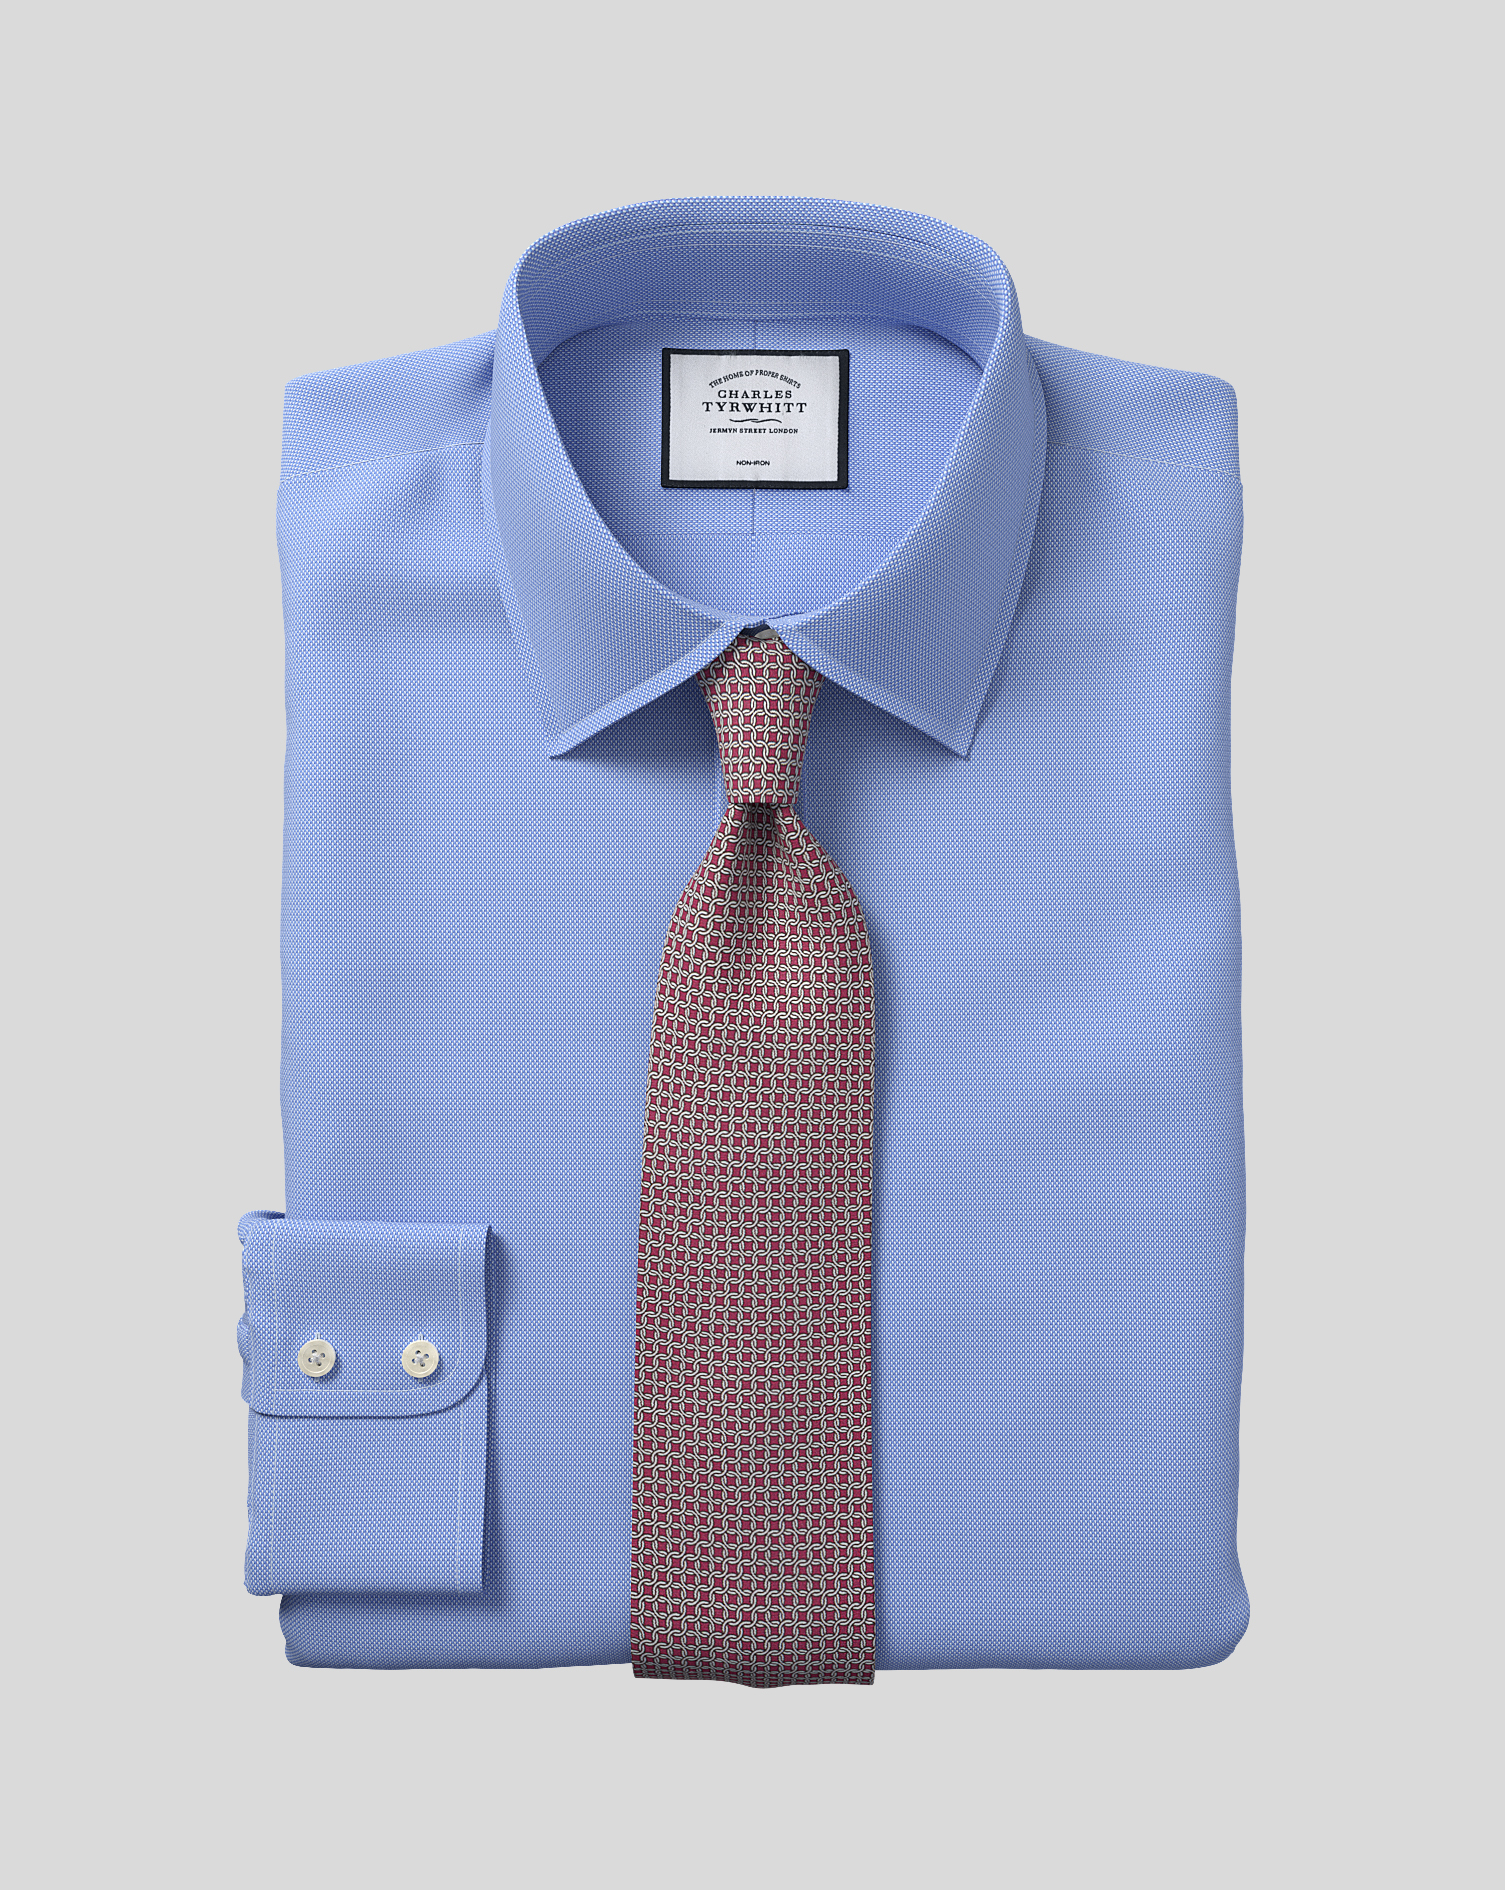 Slim Fit Non-Iron Blue Royal Panama Cotton Formal Shirt Double Cuff Size 18/35 by Charles Tyrwhitt